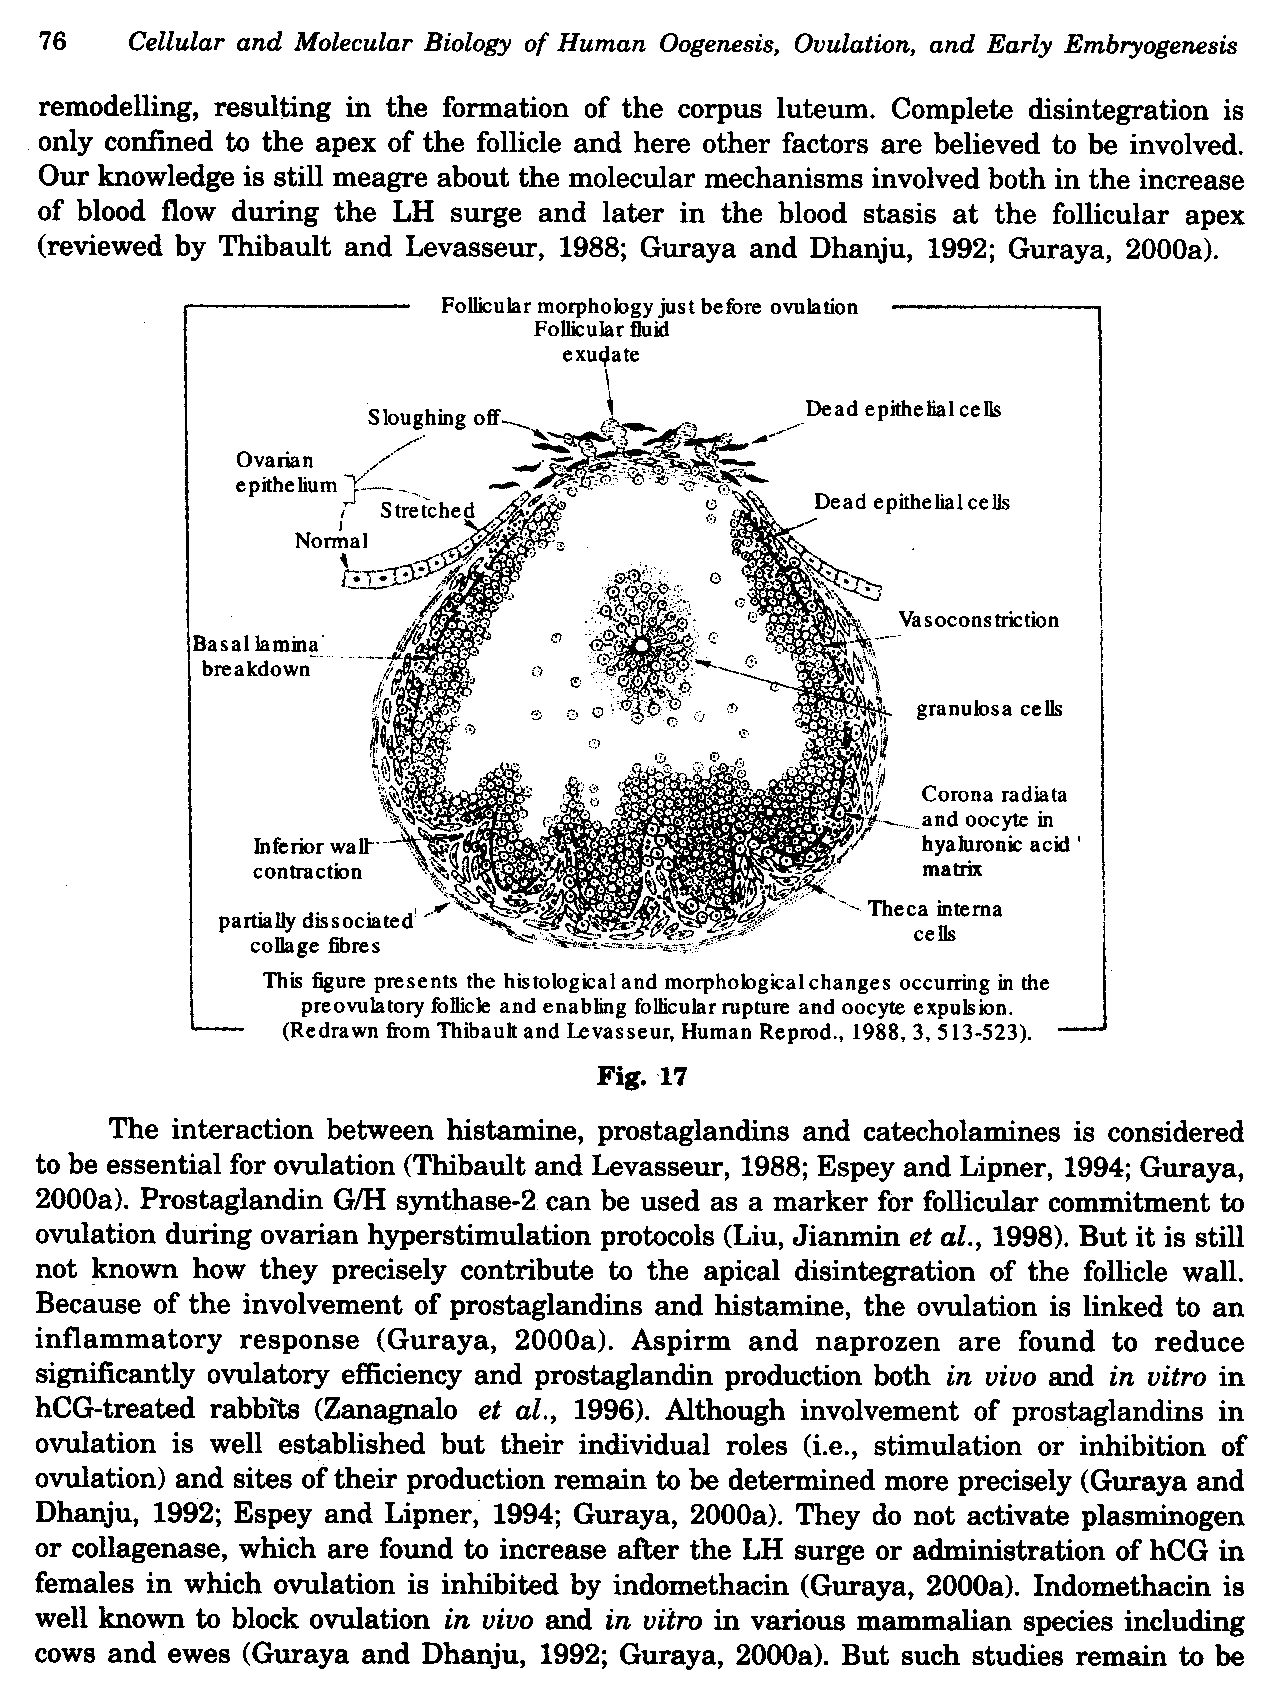 Cellular and Molecular Biology of Human Oogenesis, Ovulation and Early Embryogenesis